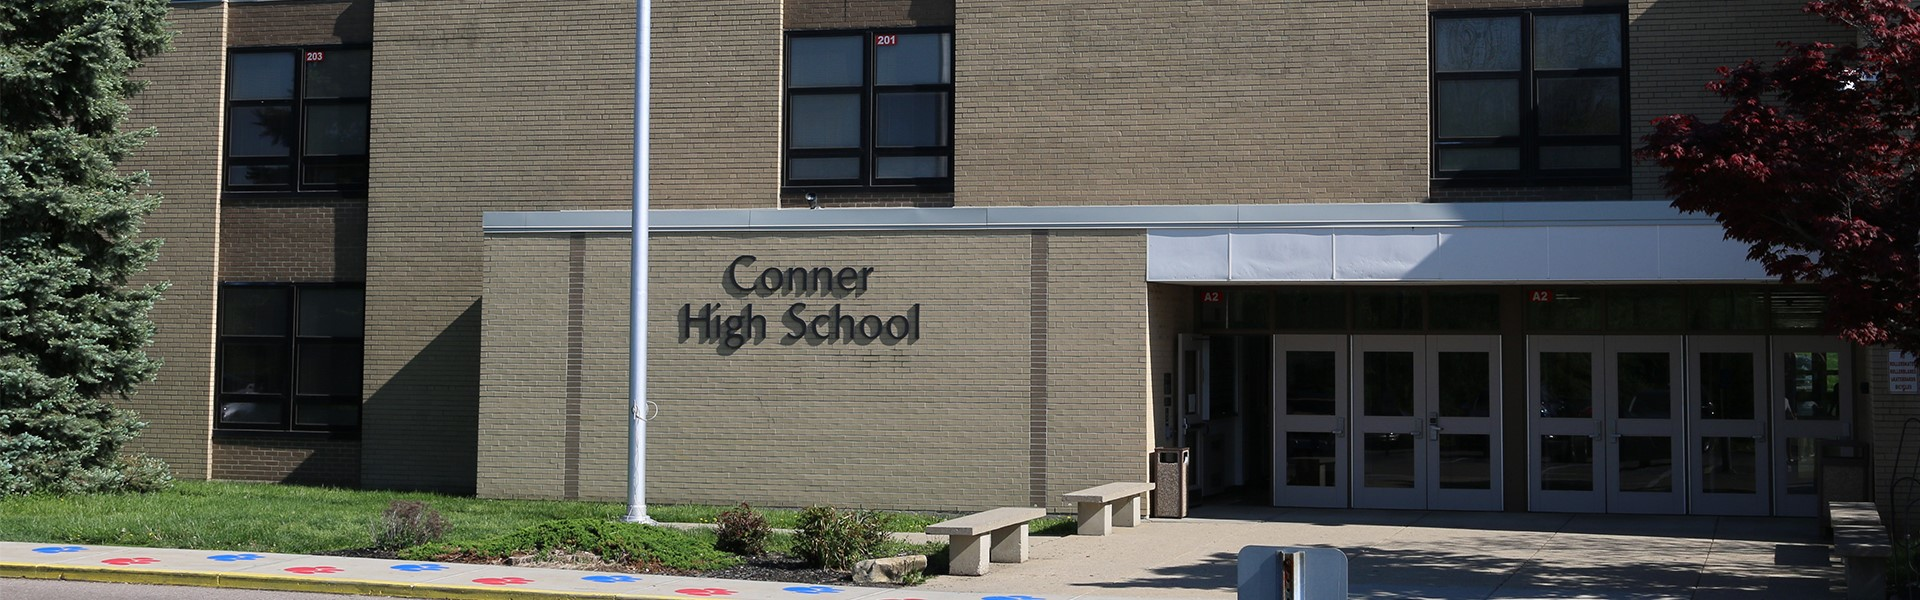 Conner High School